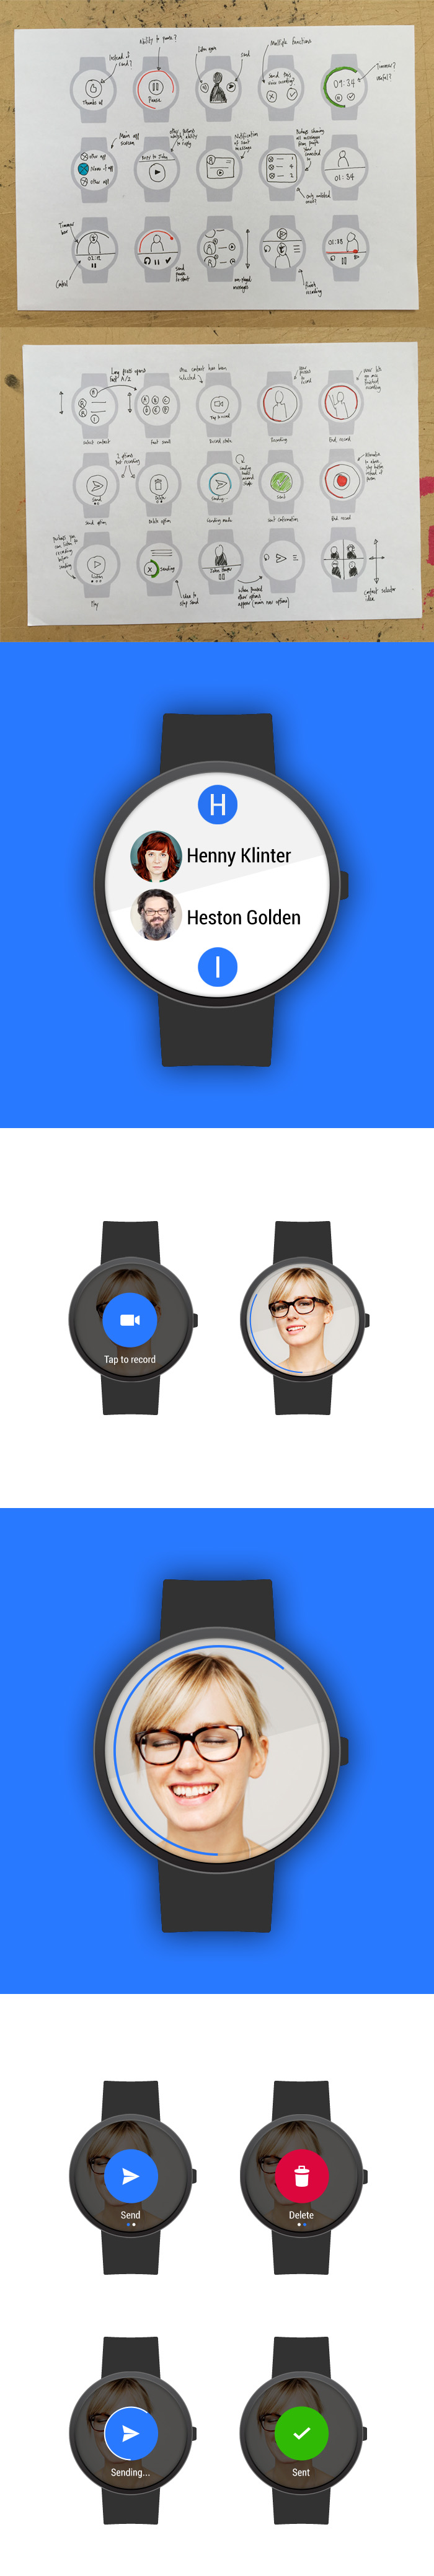 UI development for watch product